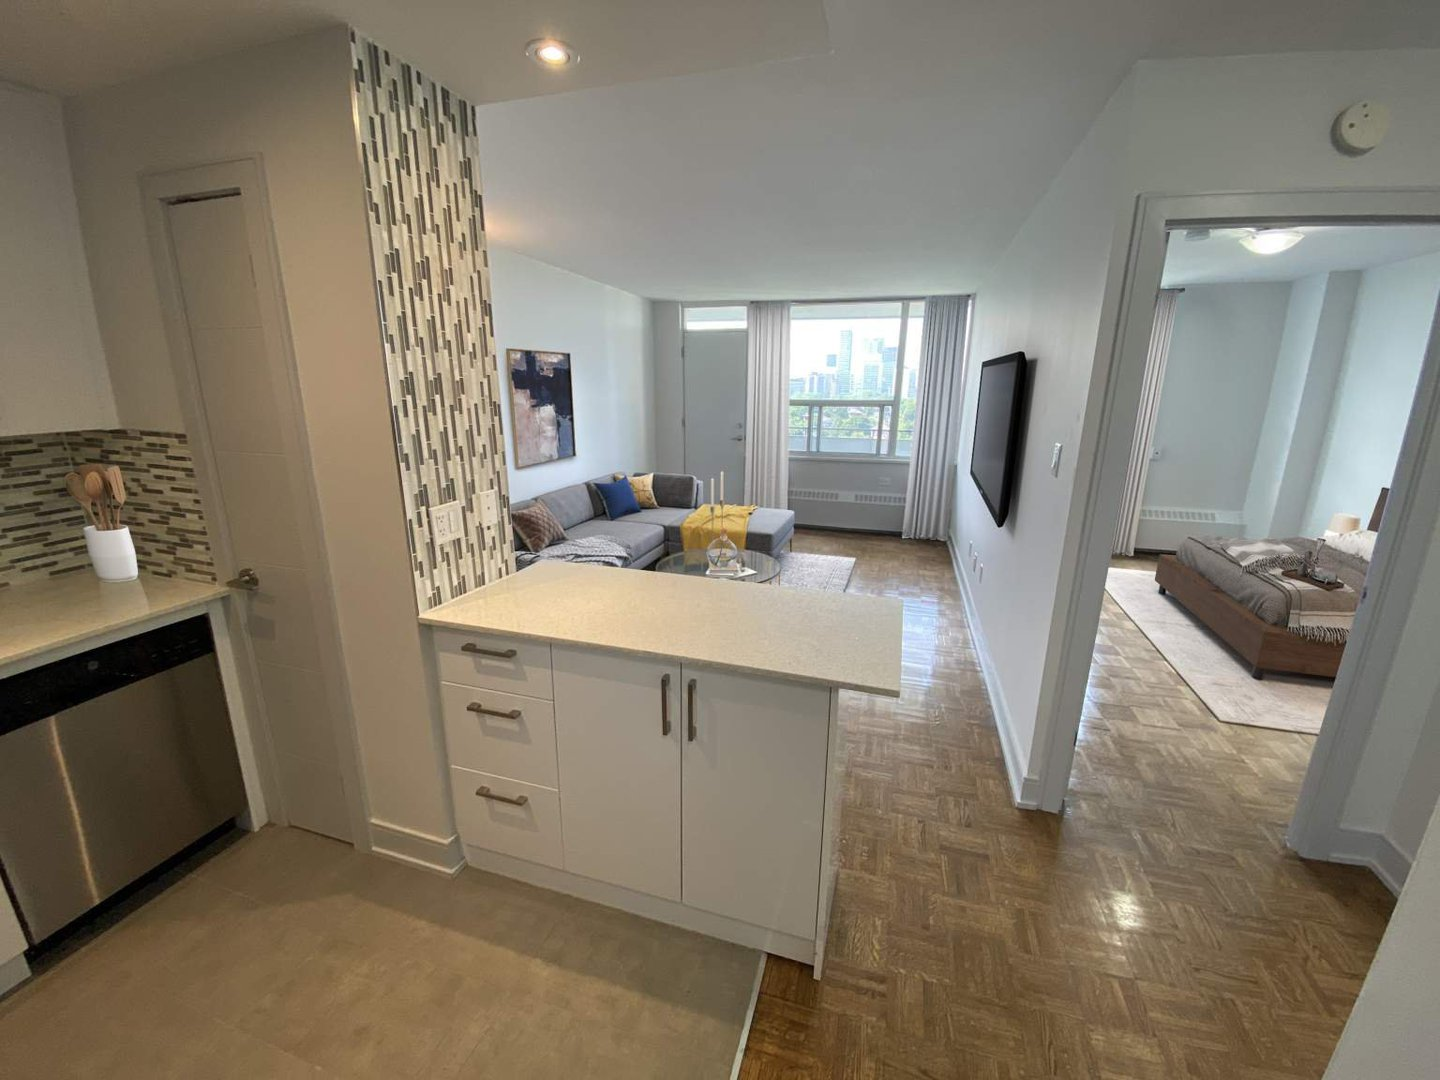 1 Bedroom Apartment Condo House For Rent In Toronto